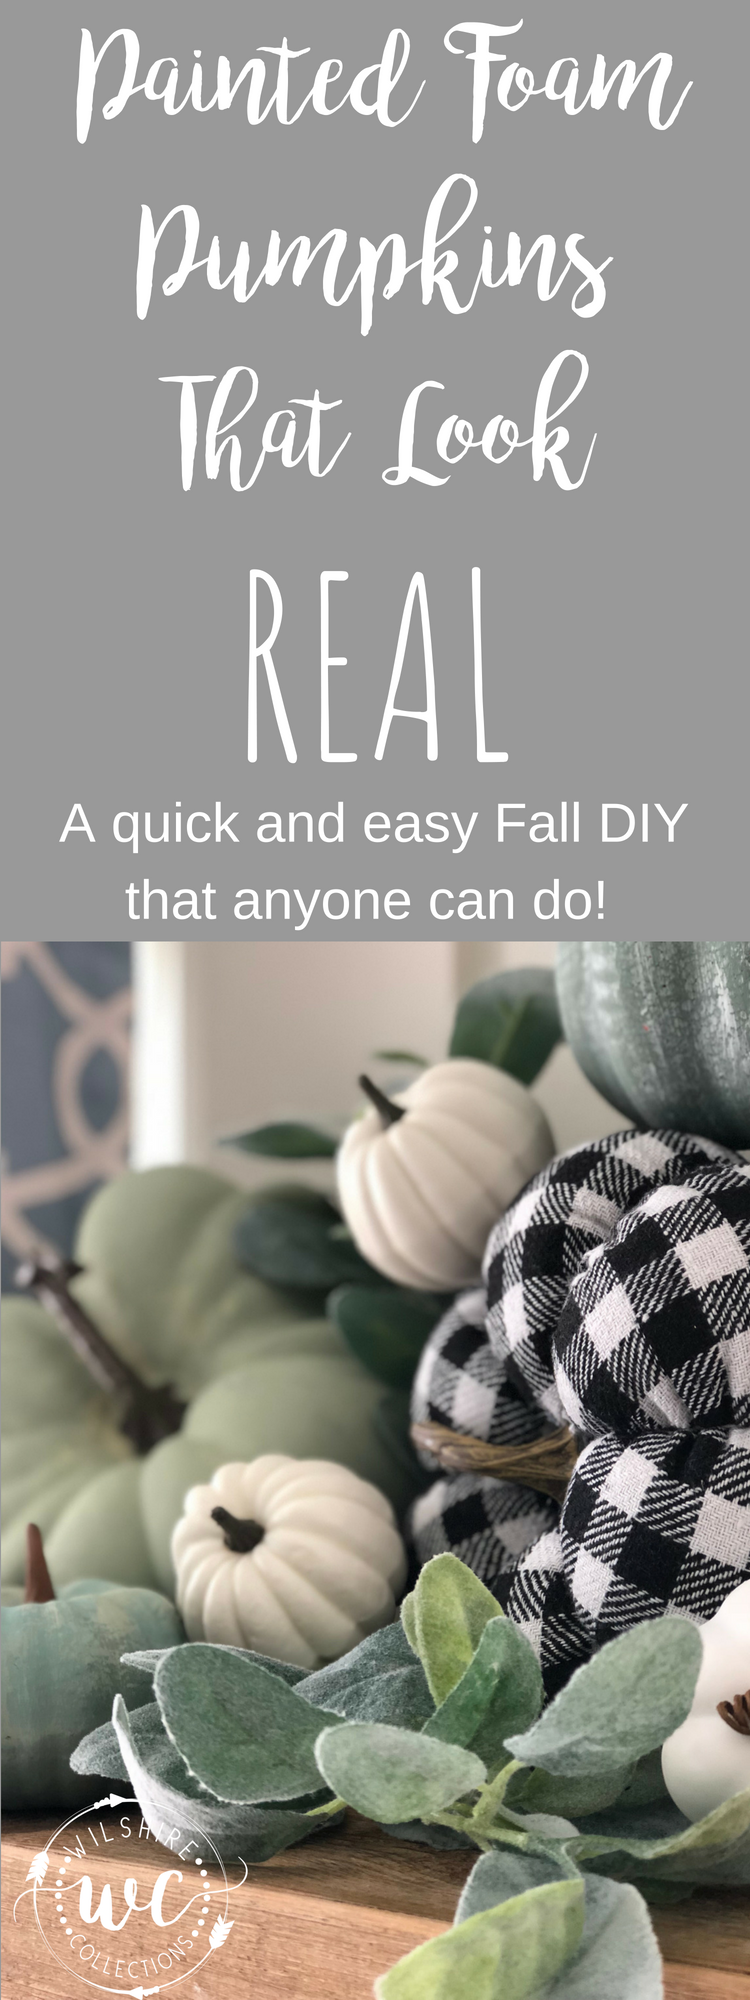 DIY painted foam pumpkins that look real! A quick and easy DIY this Fall that anyone can do. Will give you that instant farmhouse charm when paired with buffalo check pumpkins!